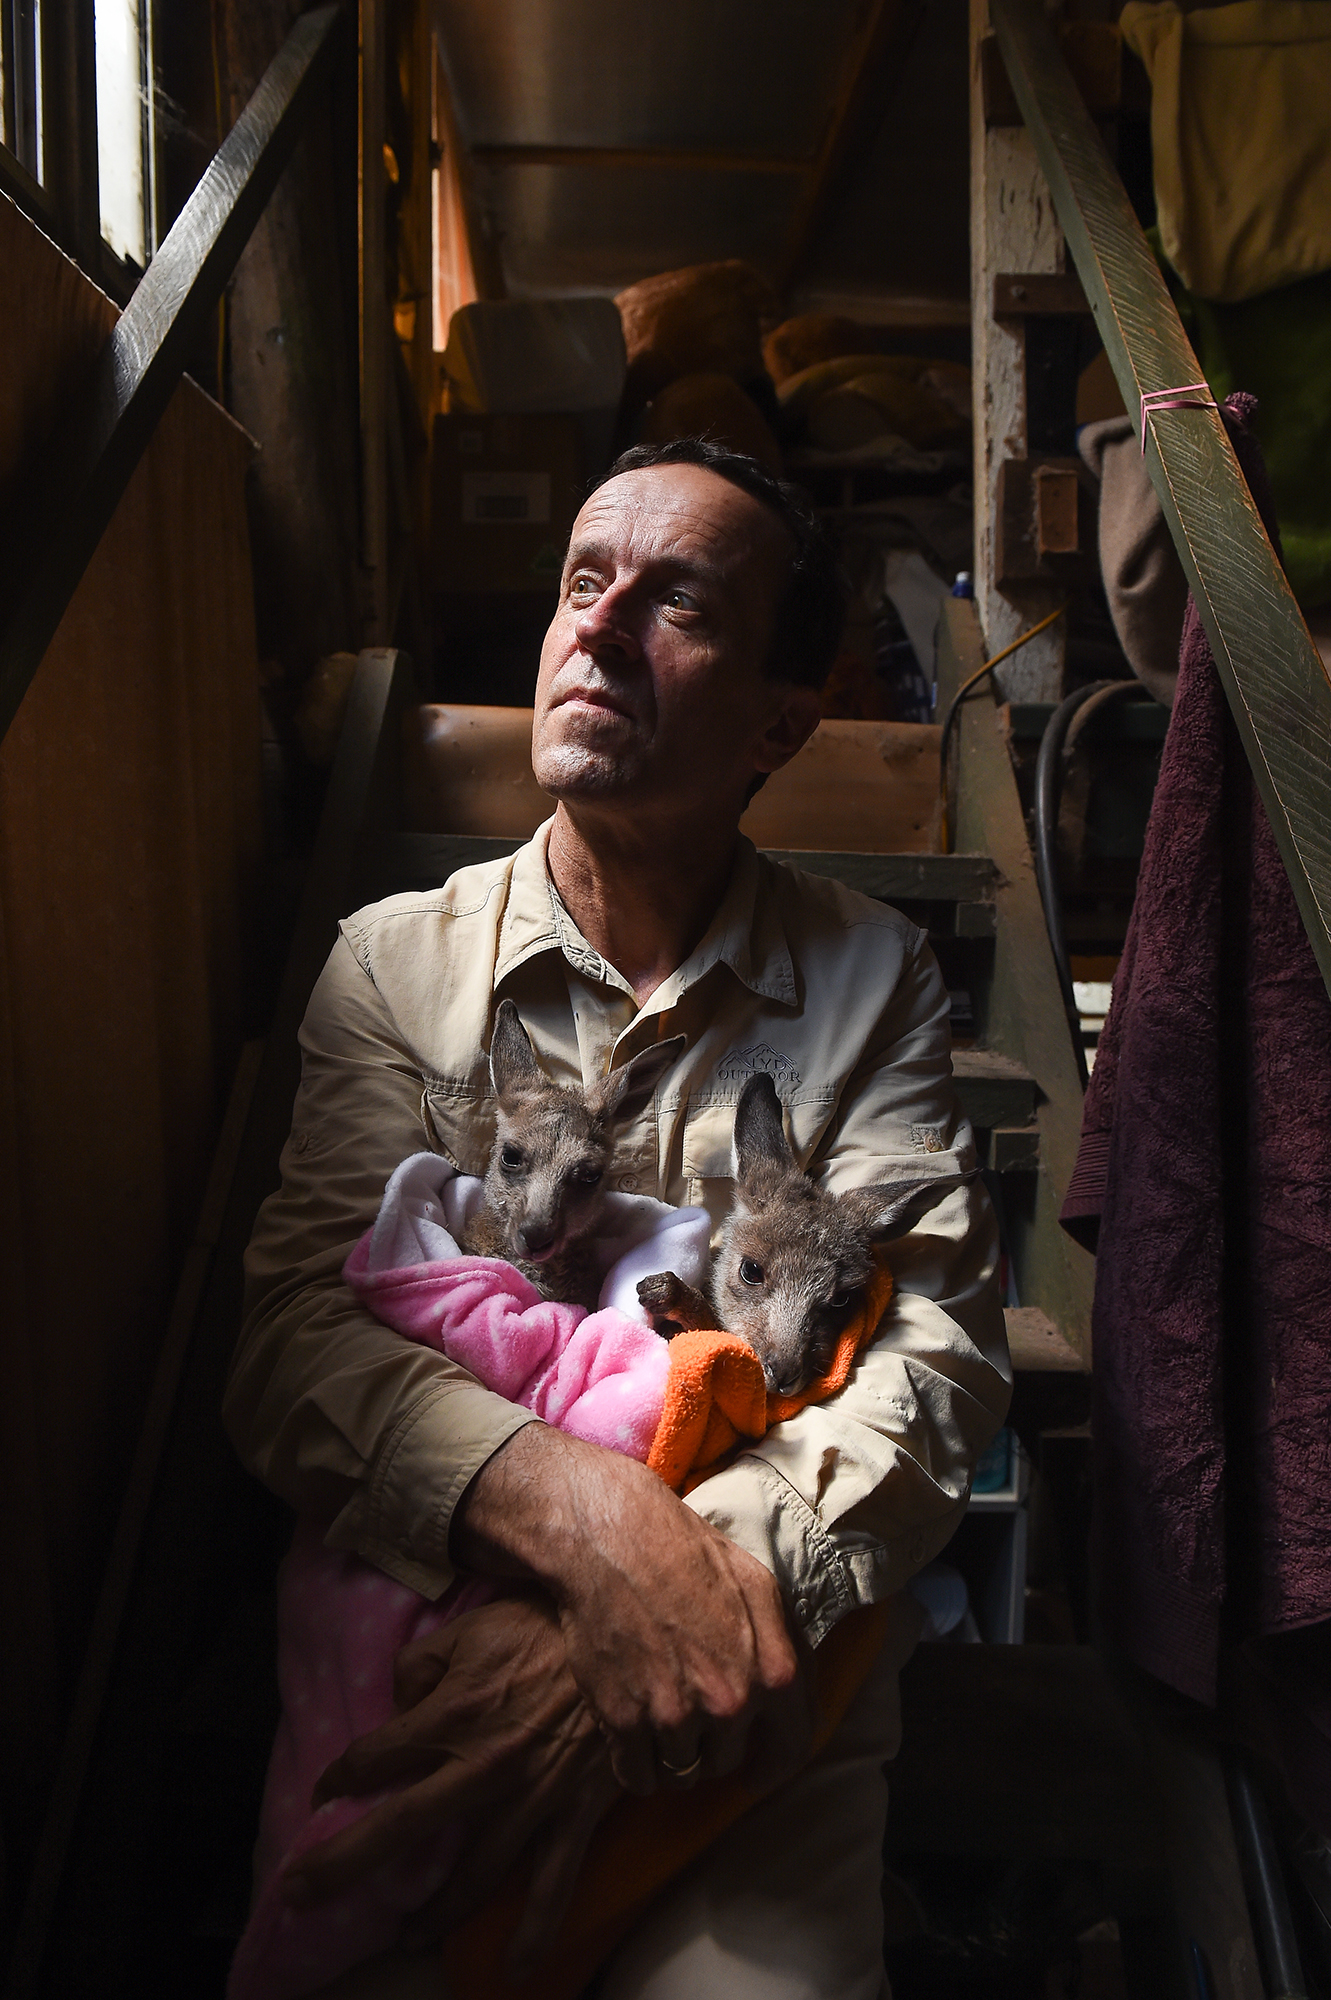 (Photo Mark Jesser) Yackandandah. Kangaloola Wildlife Shelter.A secret government report provides a damning assessment of the Kangaroo Pet Food Trial (KPFT) in Victoria, exposing fraud, illegal activity and unsustainable shooting.PICTURED: Chris Lehmann with some young kangaroos.